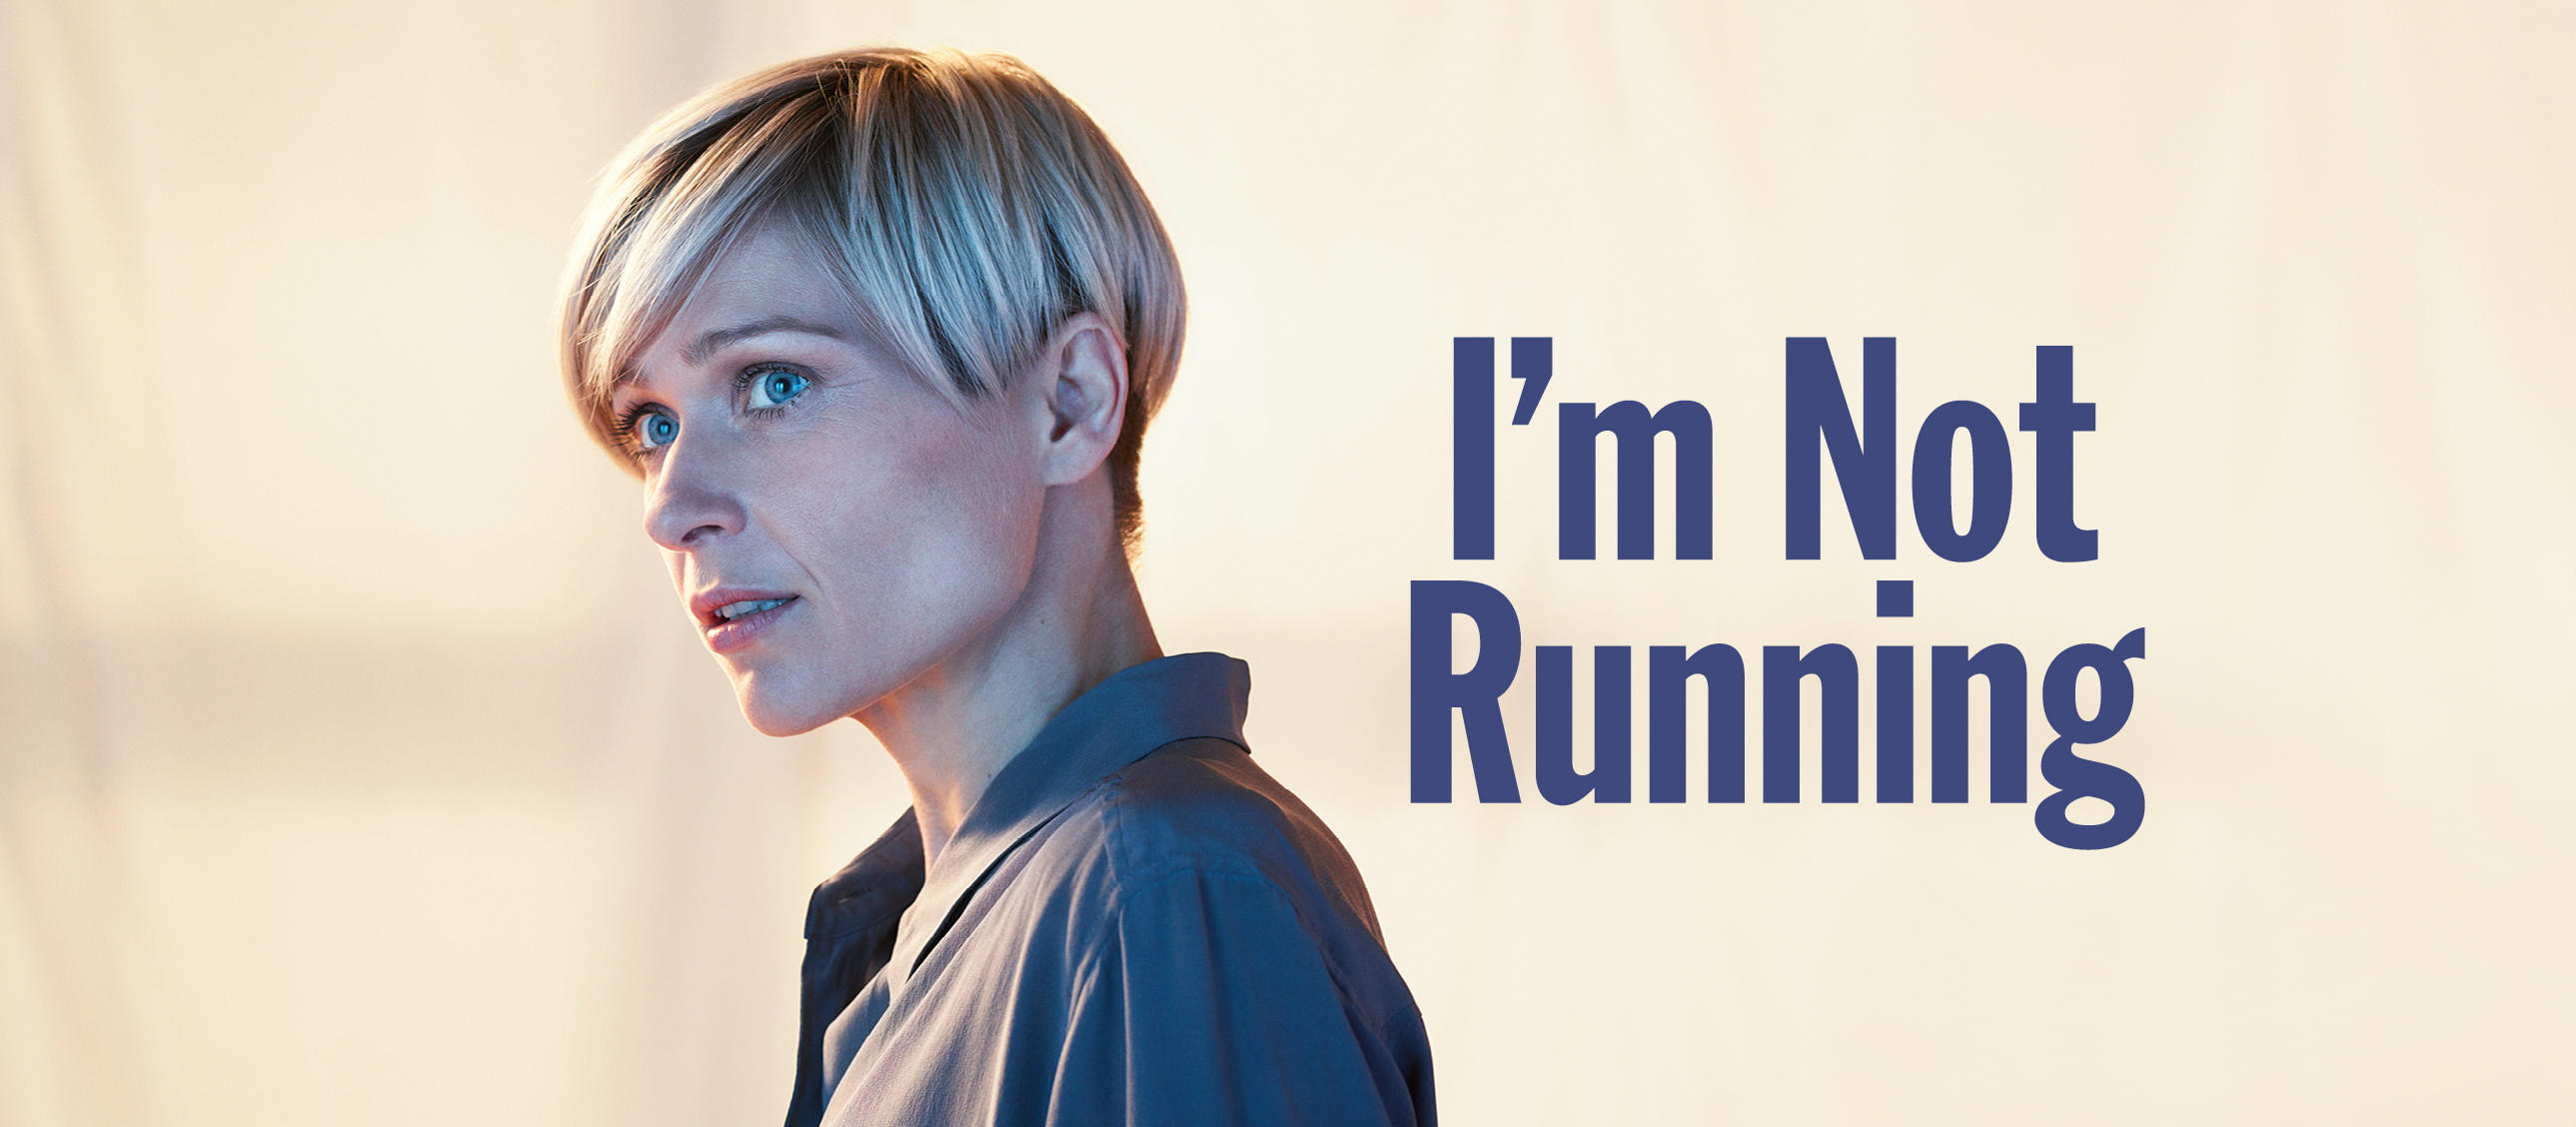 I'm Not Running by David Hare, with image of Siân Brooke